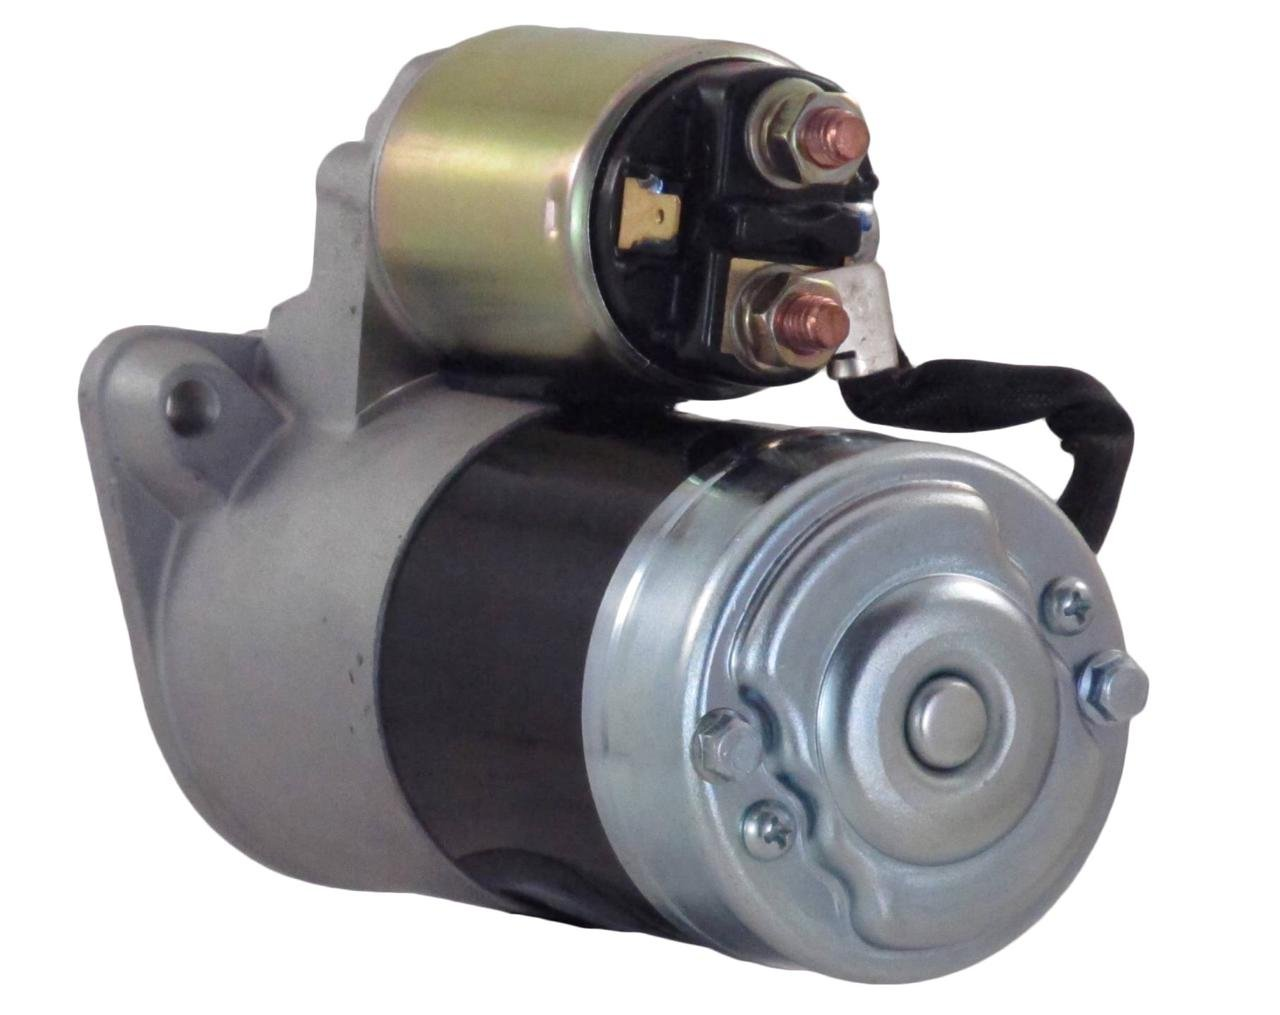 Amazon.com: STARTER MOTOR FITS MITSUBISHI ECLIPSE GALANT MIRAGE MONTERO PICKUP TREDIA VAN 2.0 2.4: Automotive